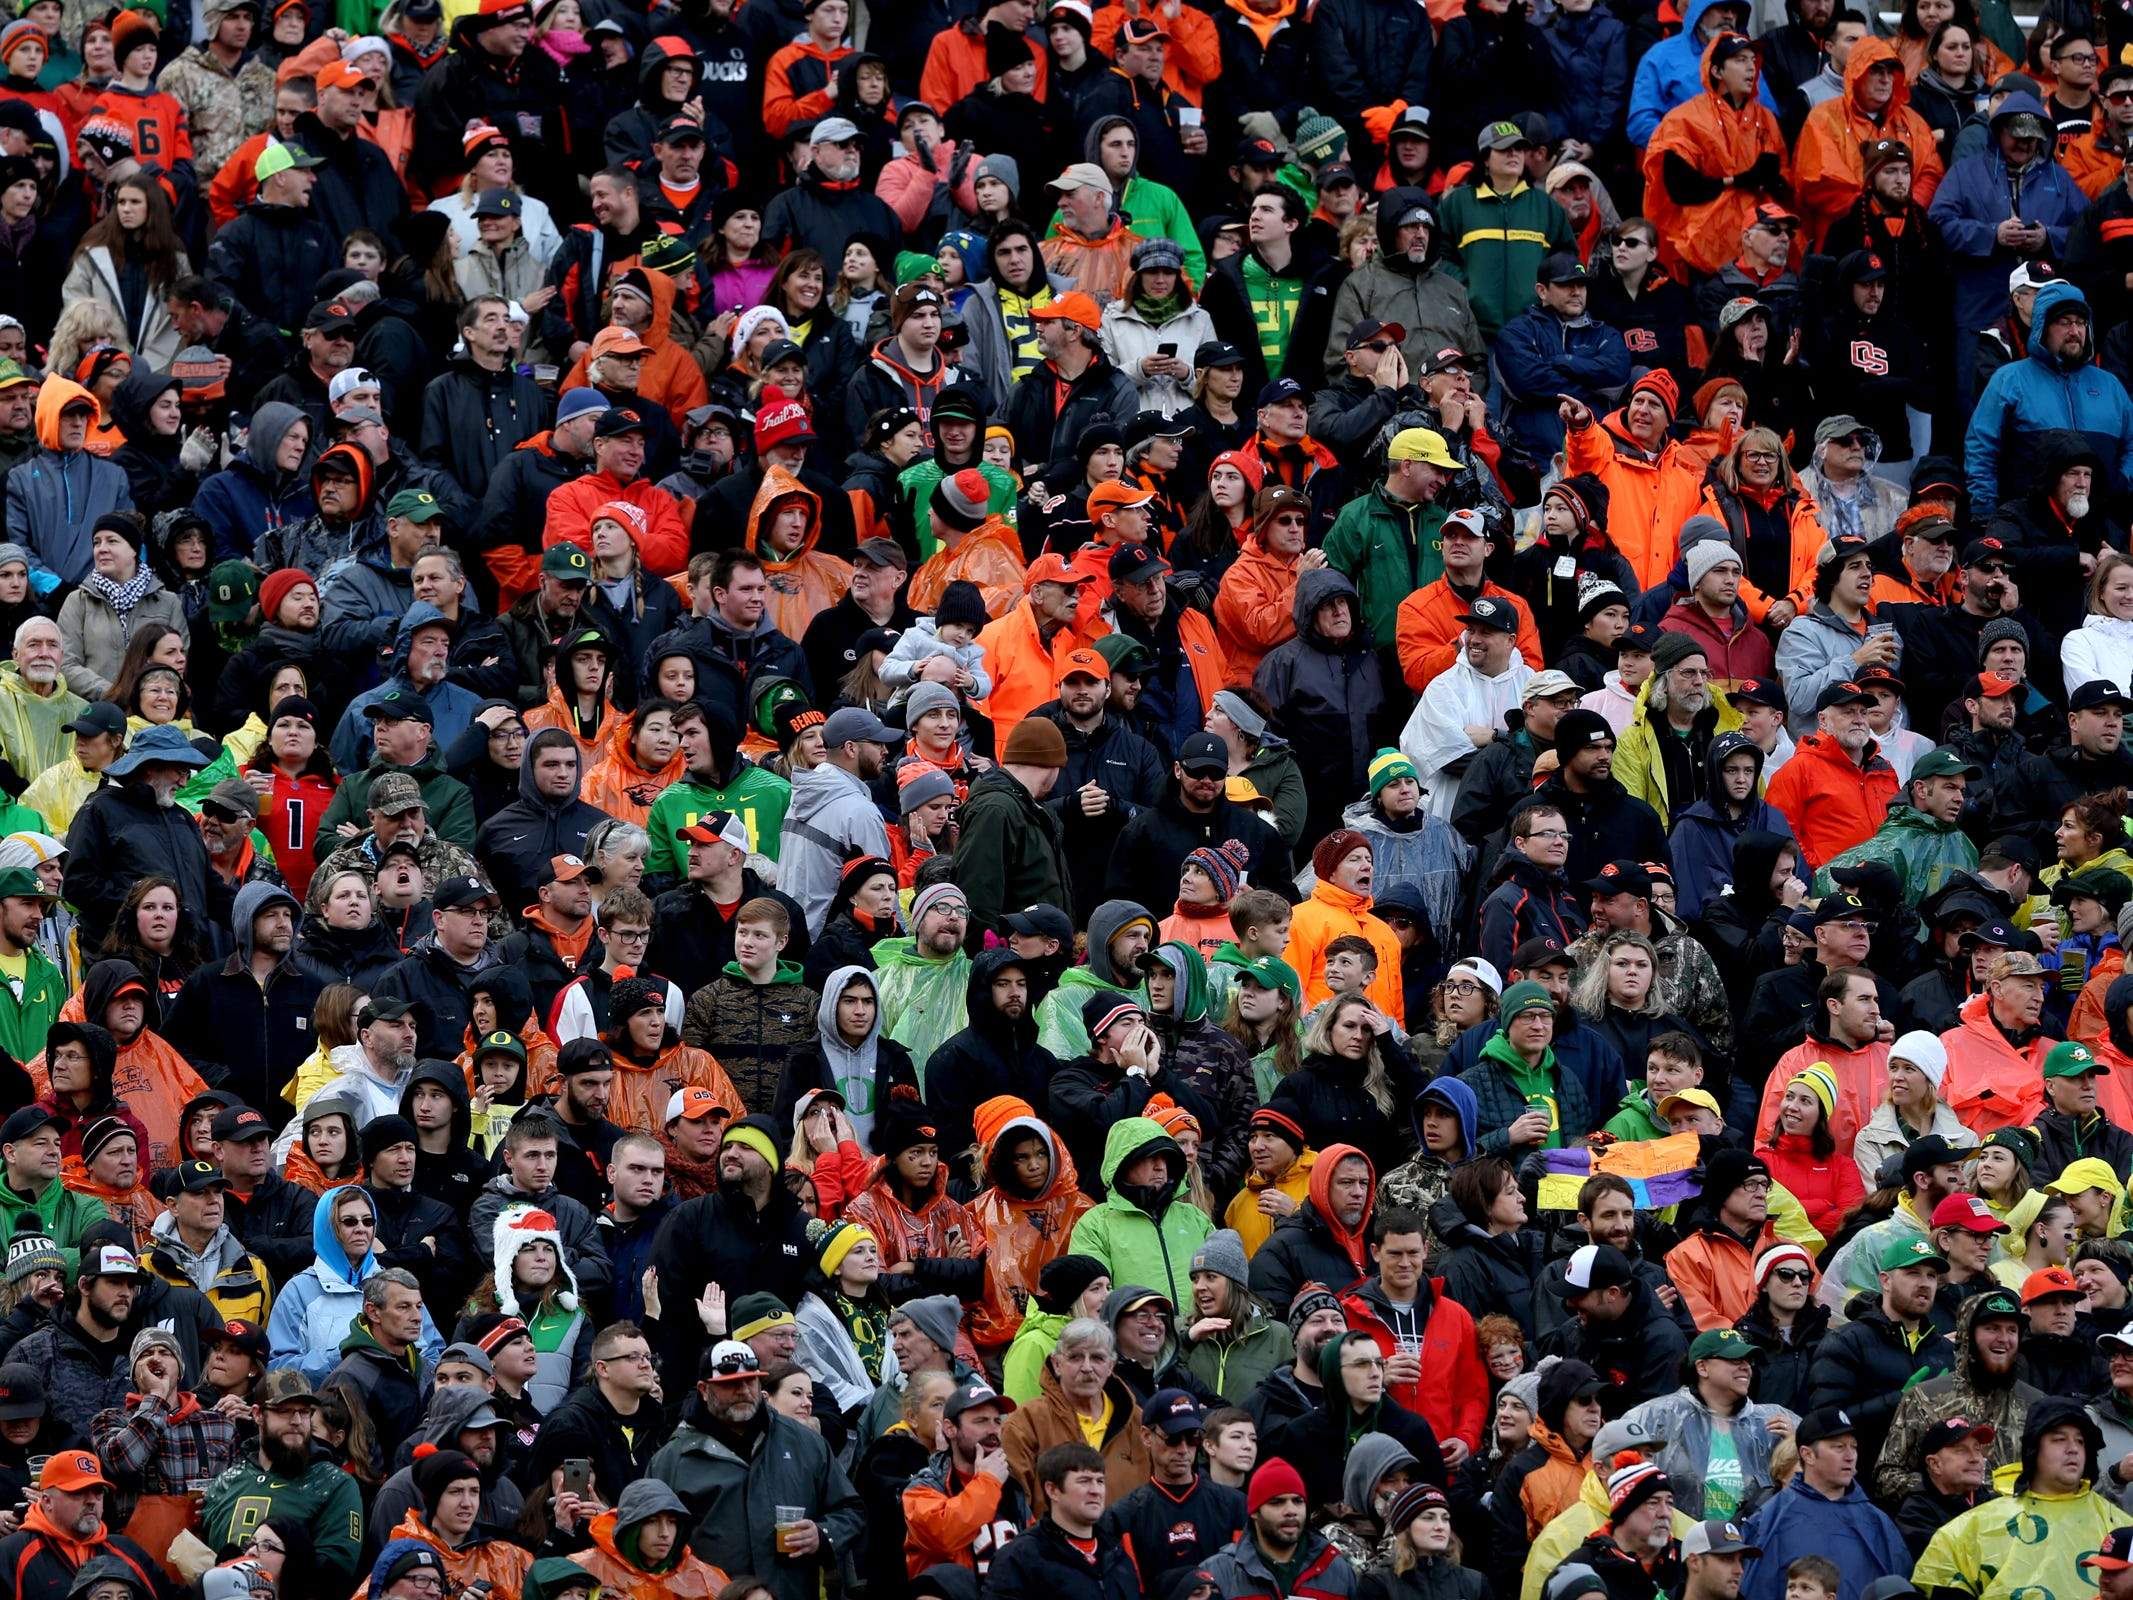 The crowd at the Oregon vs. Oregon State Civil war football game at Oregon State University in Corvallis on Friday, Nov. 23, 2018.